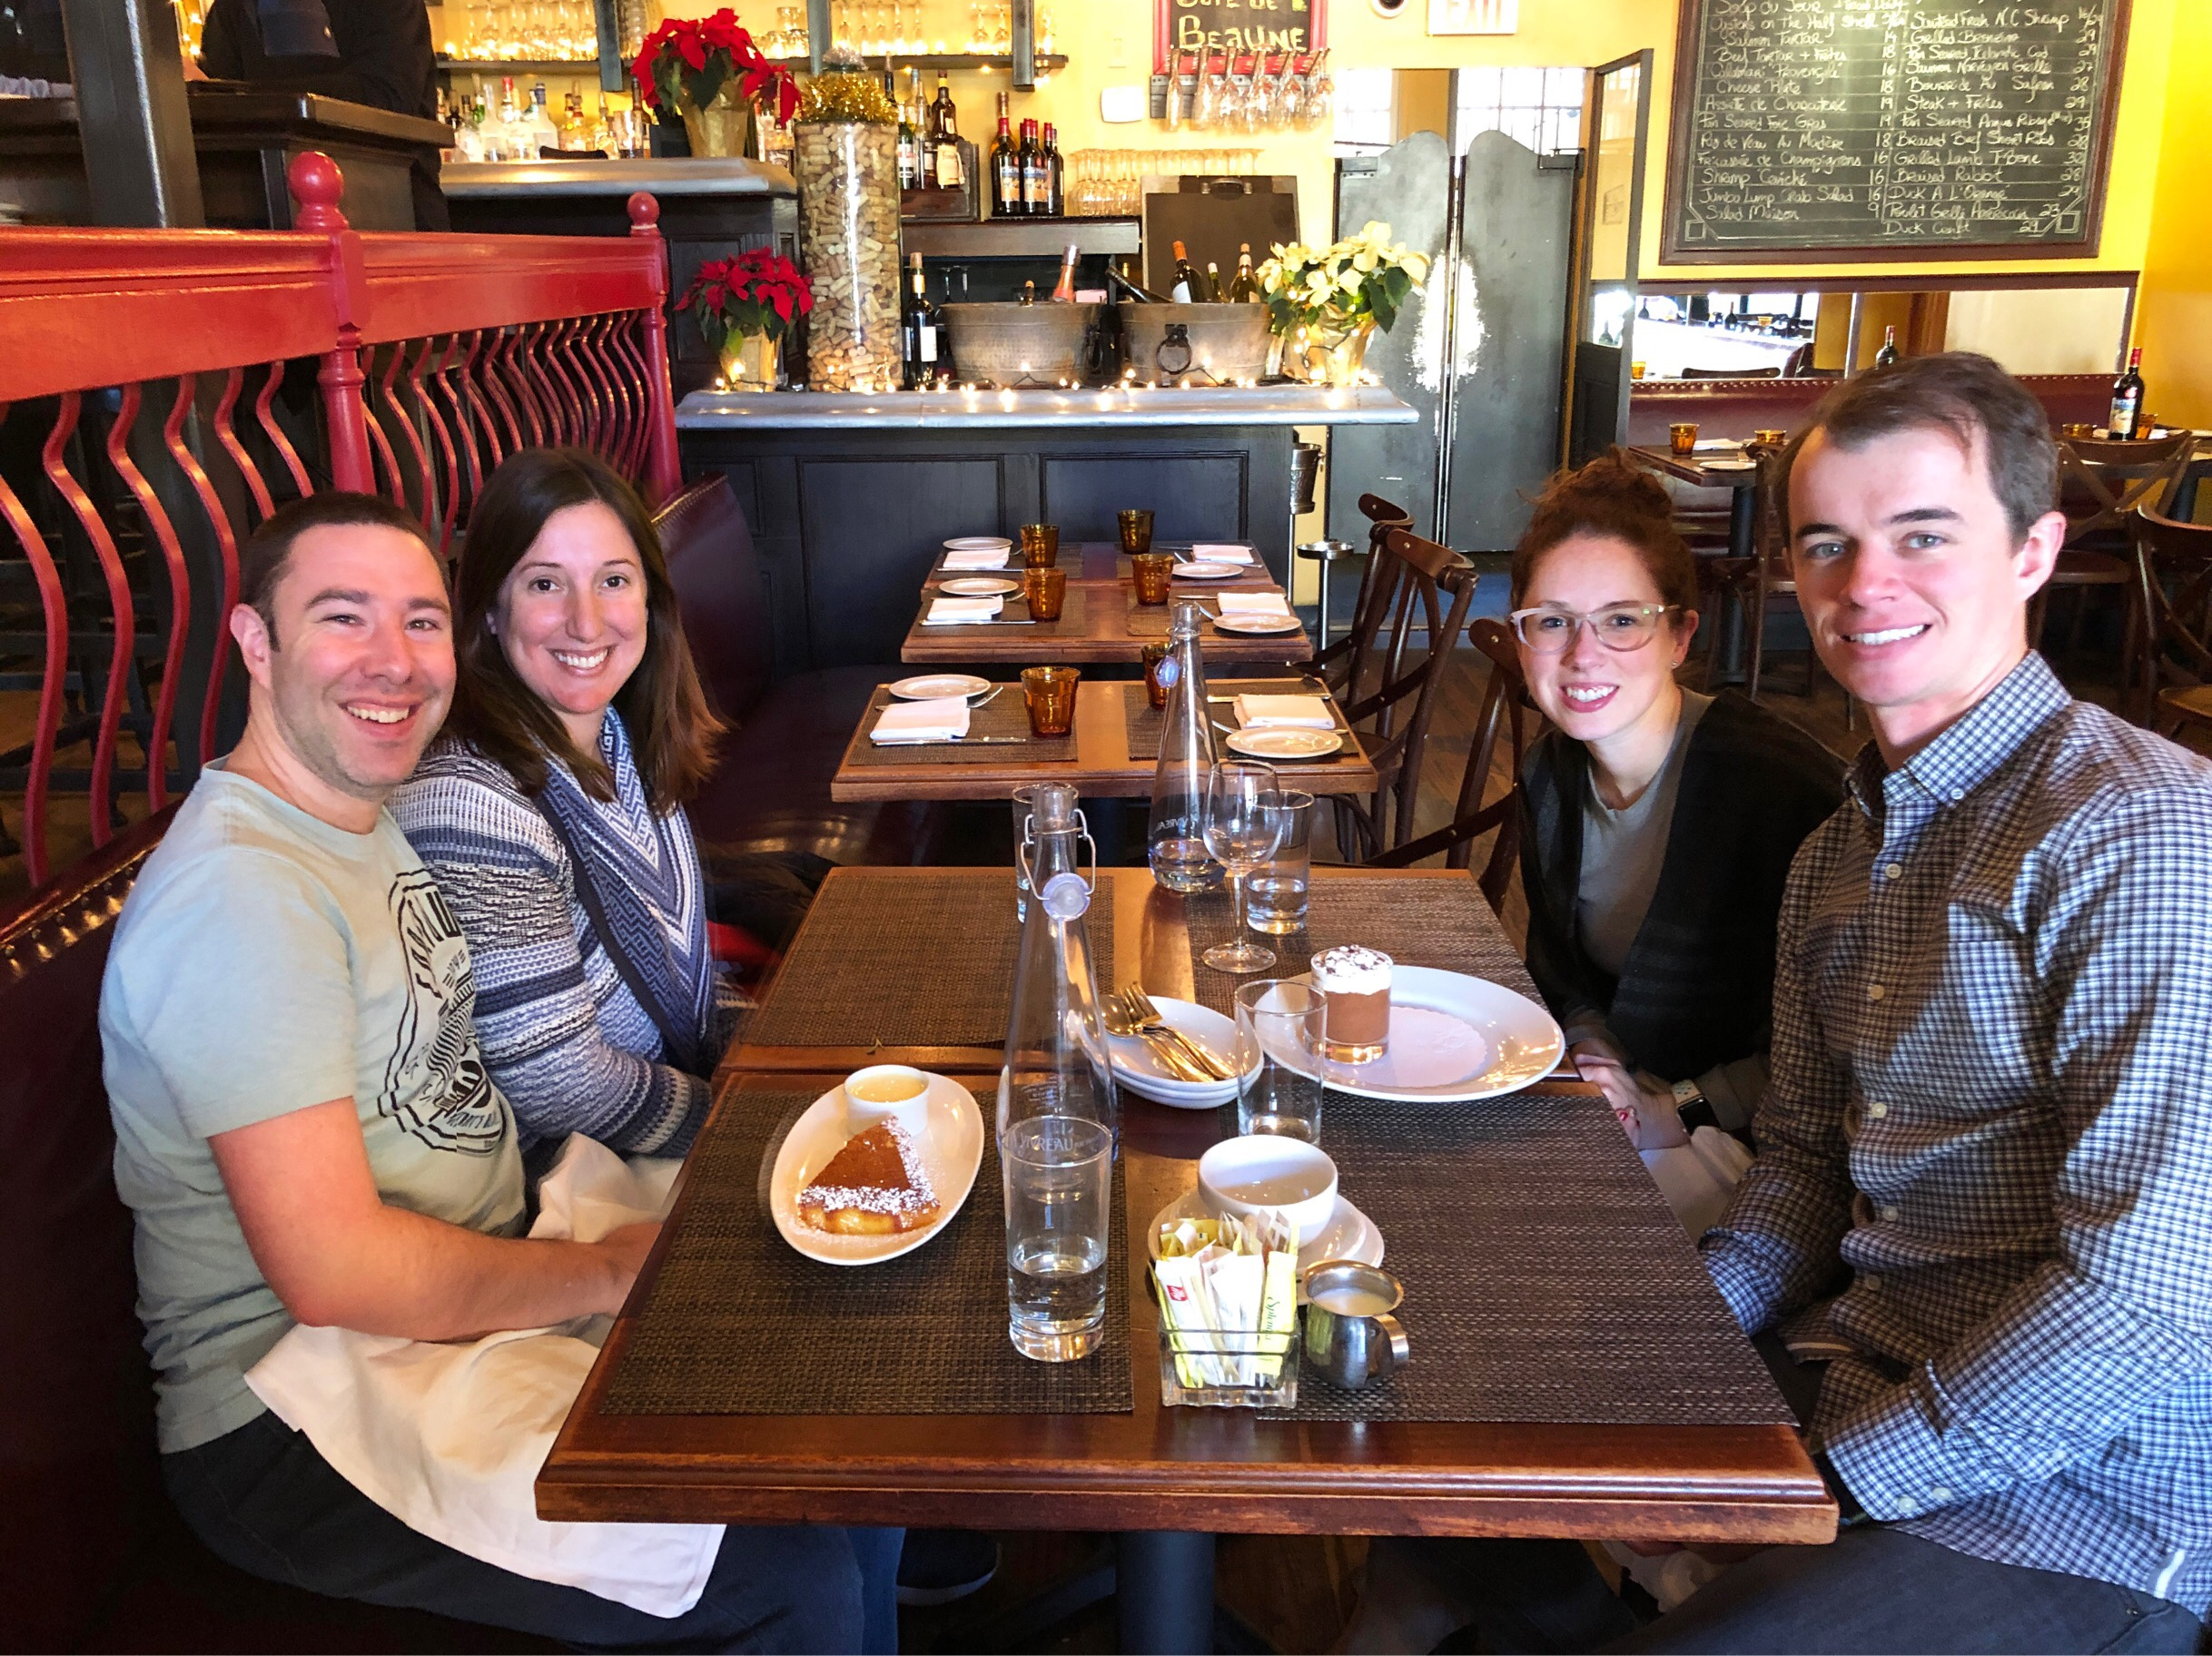 Marnay, Paul, Kyle and Brenna eating brunch at La Piquette in Washington DC